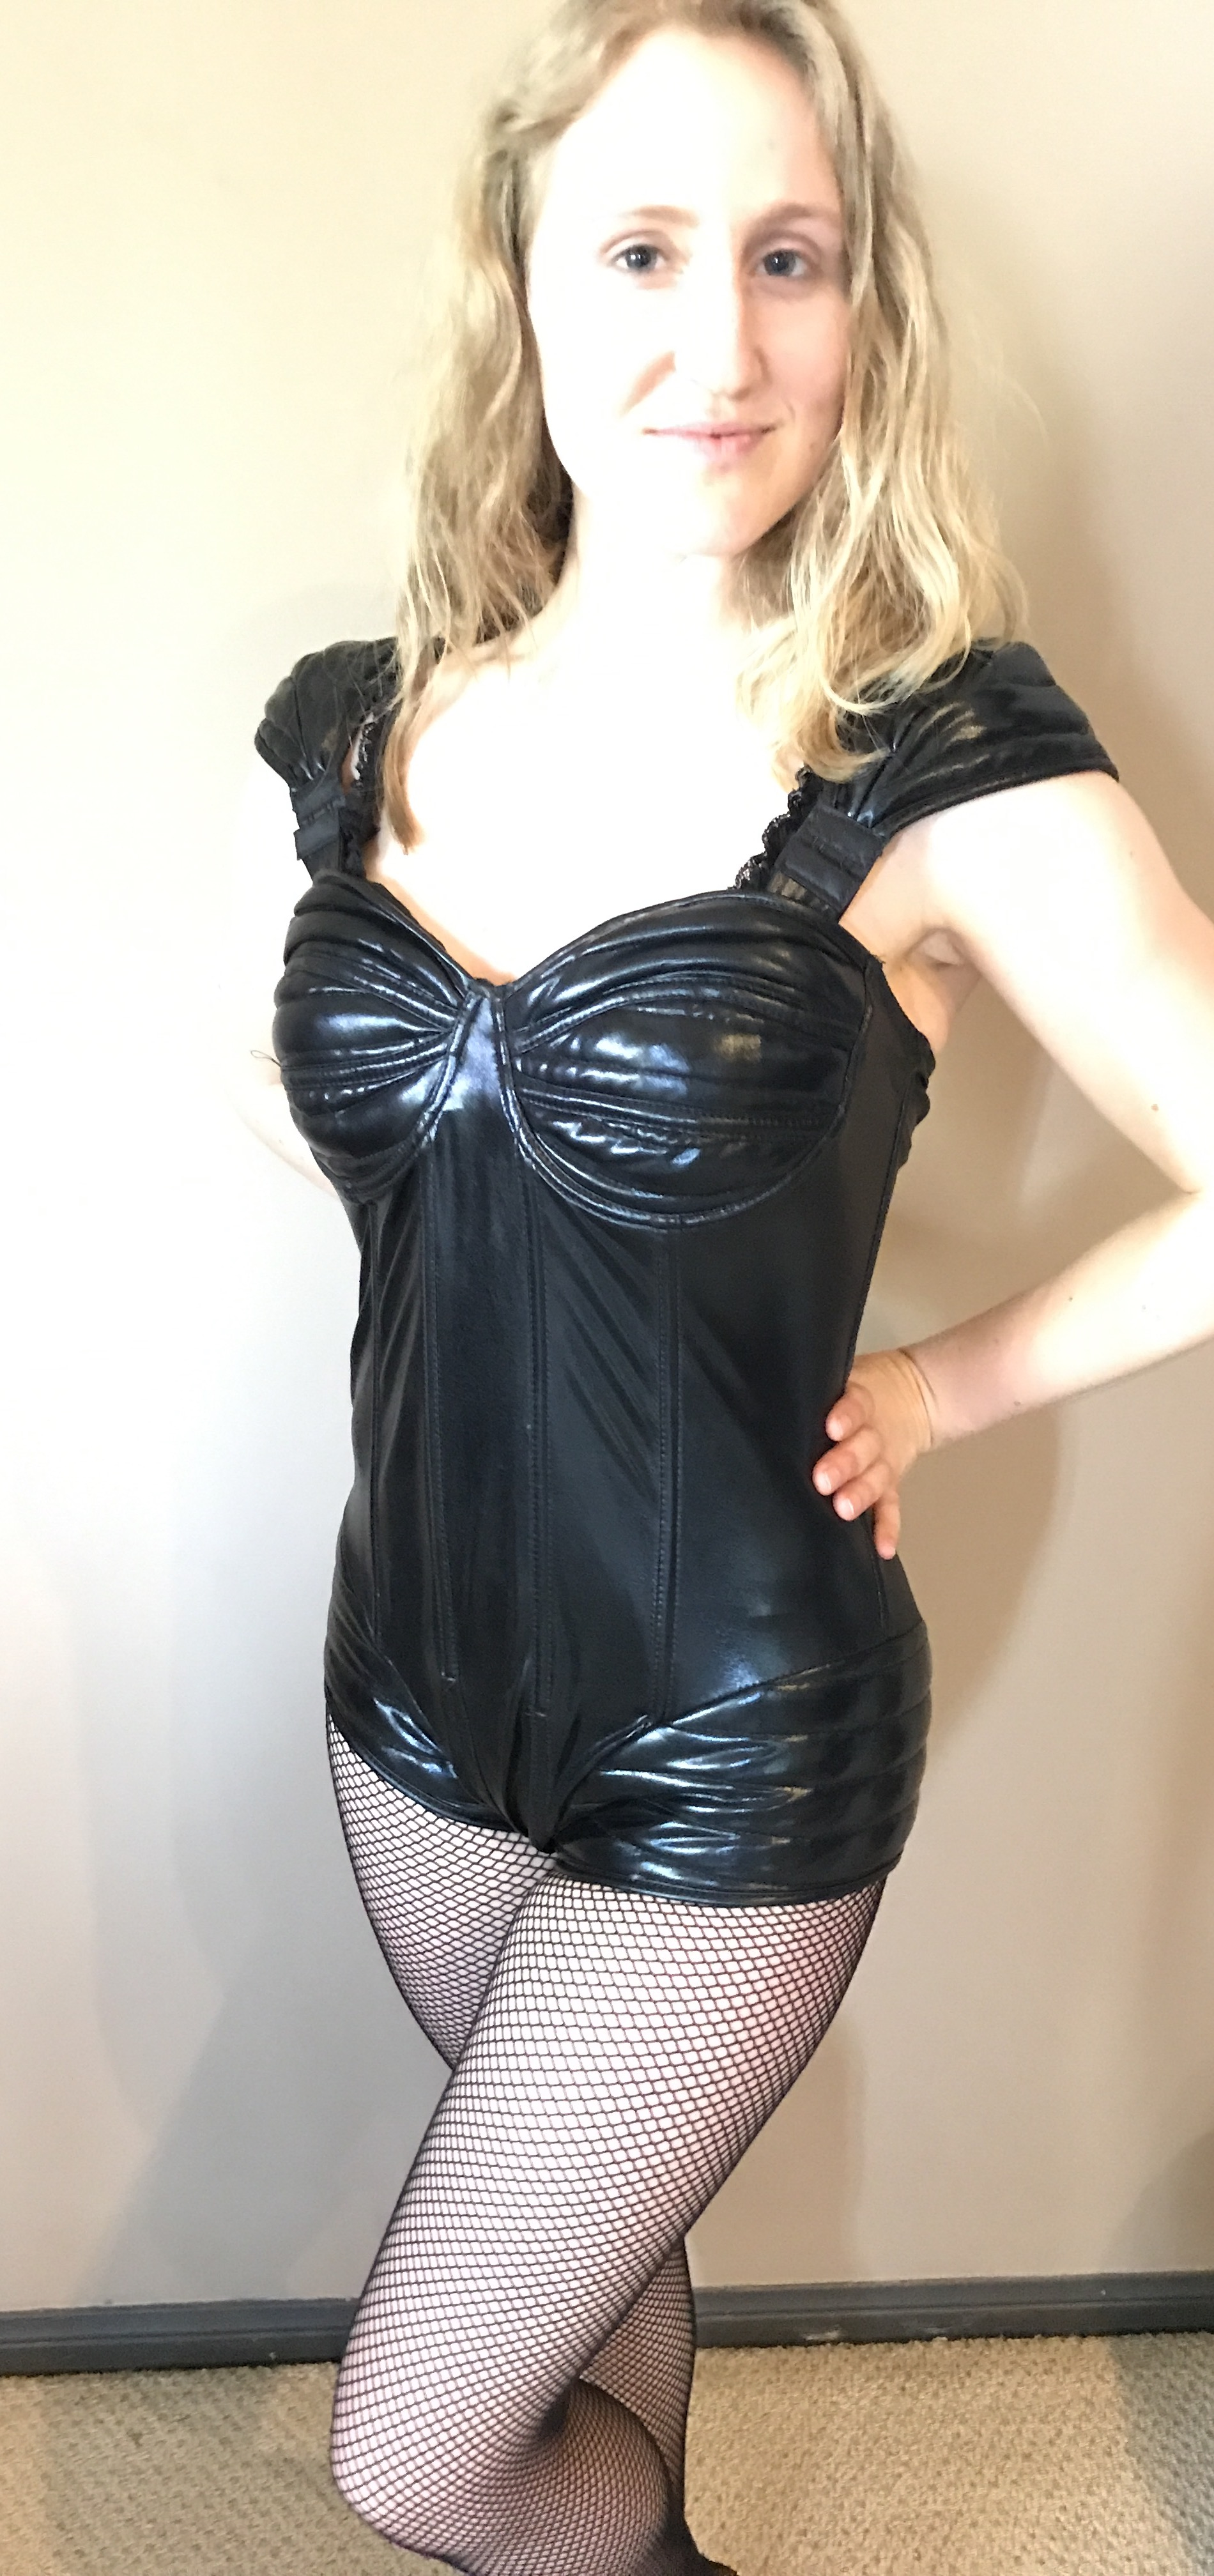 8) Pleather One Piece